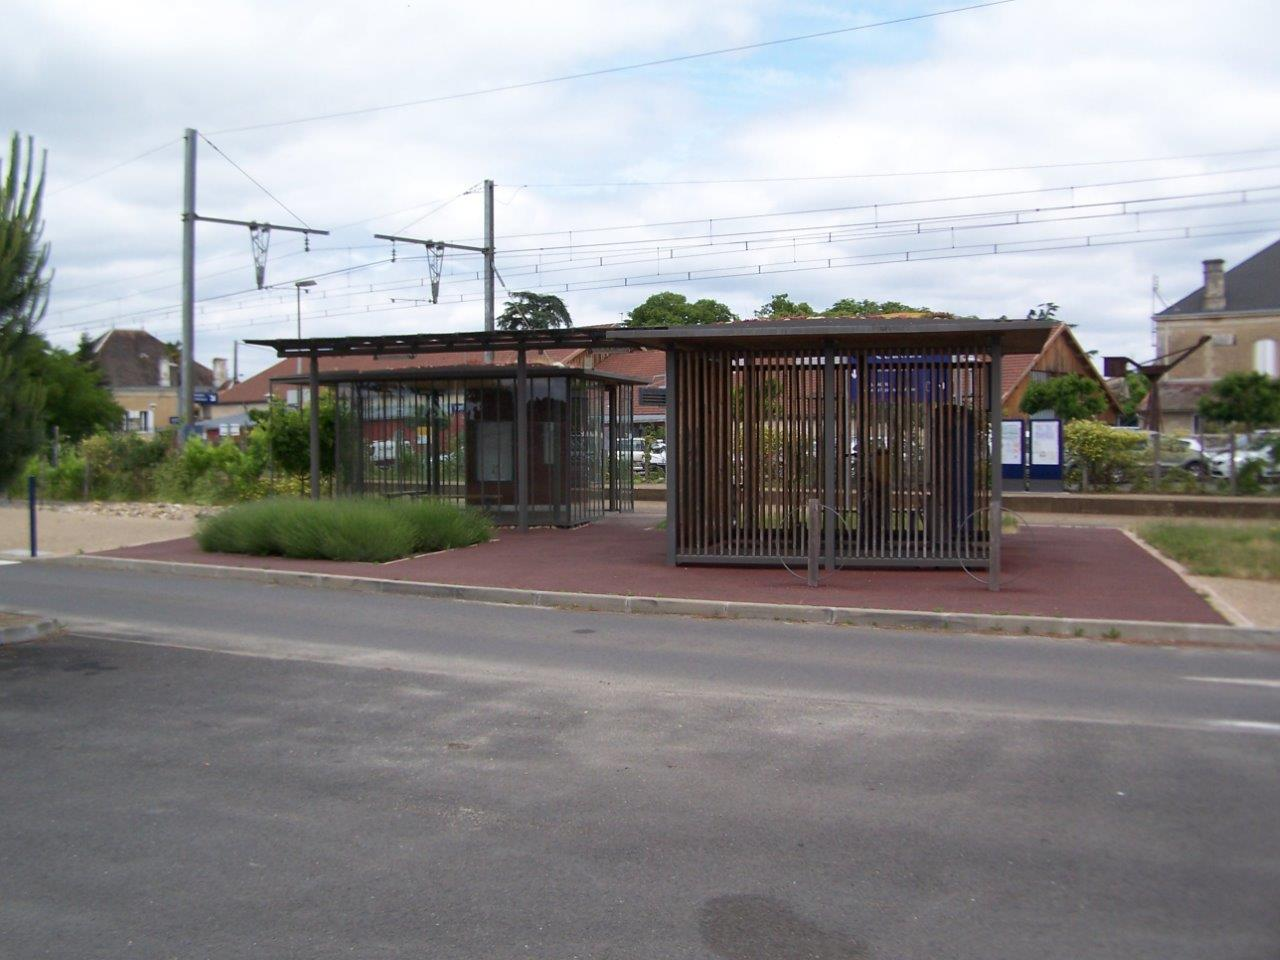 gare-de-portets-train-station